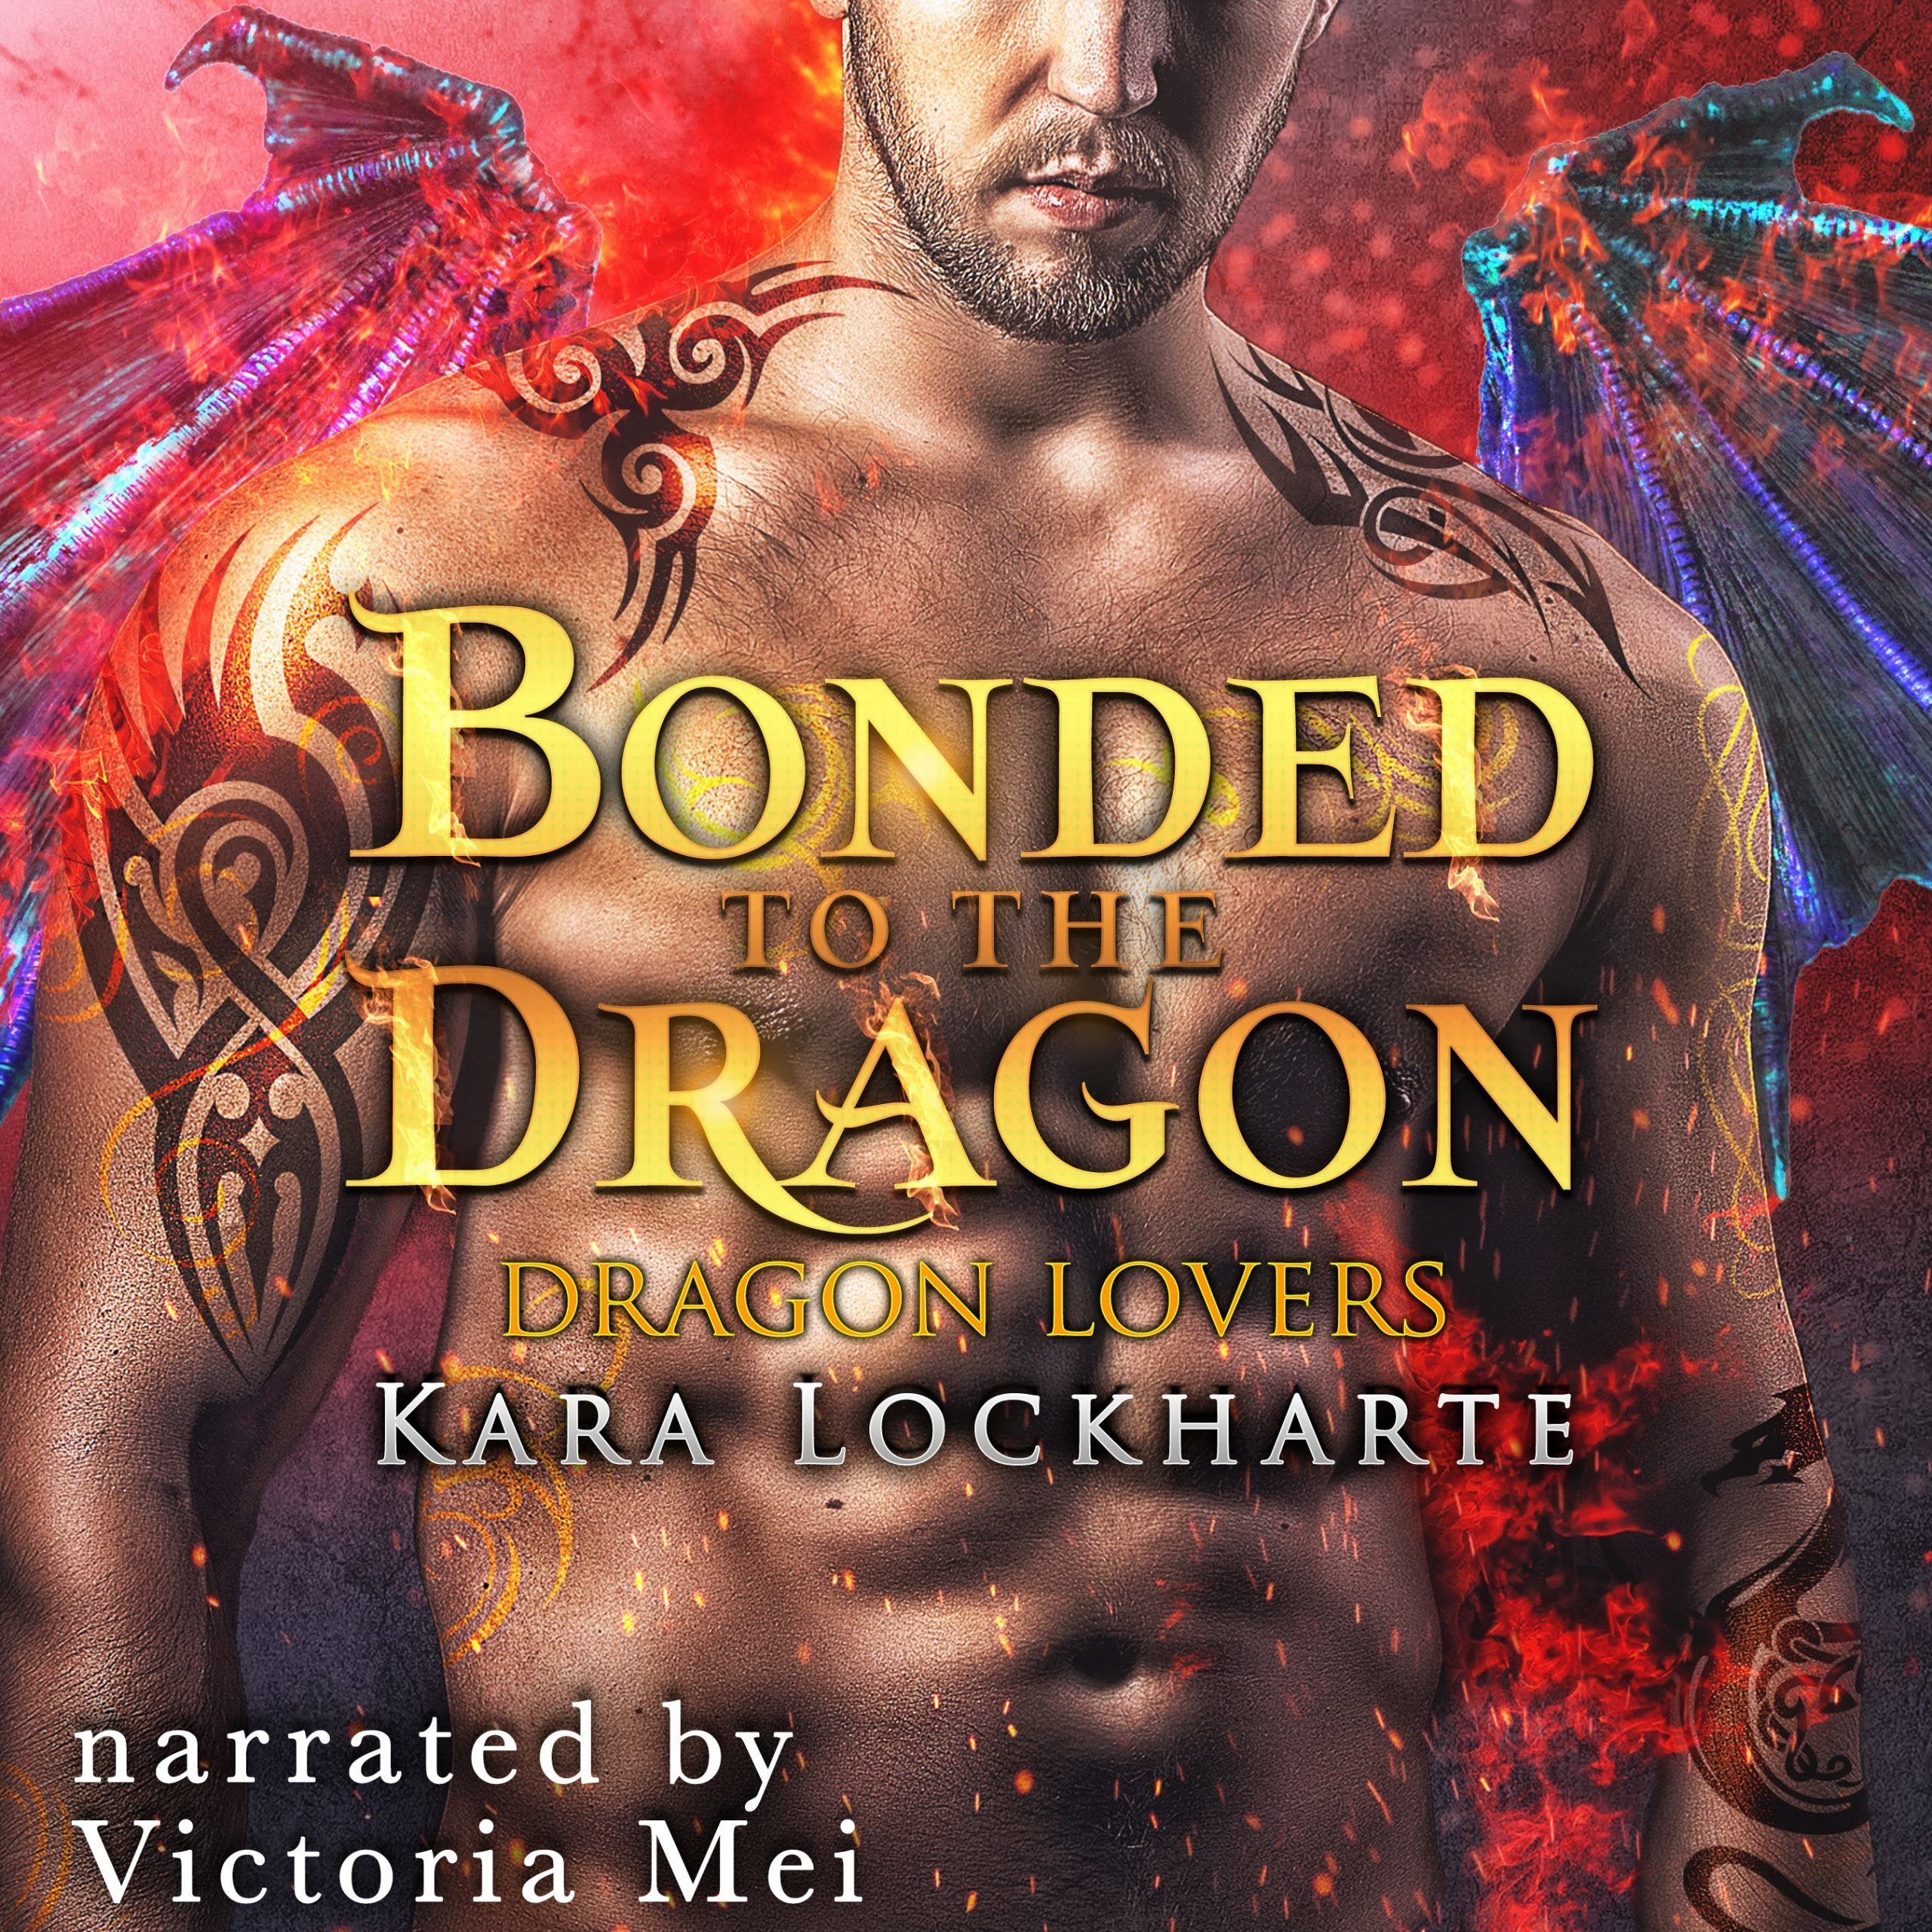 Bonded to the Dragon by Kara Lockharte Audiobook